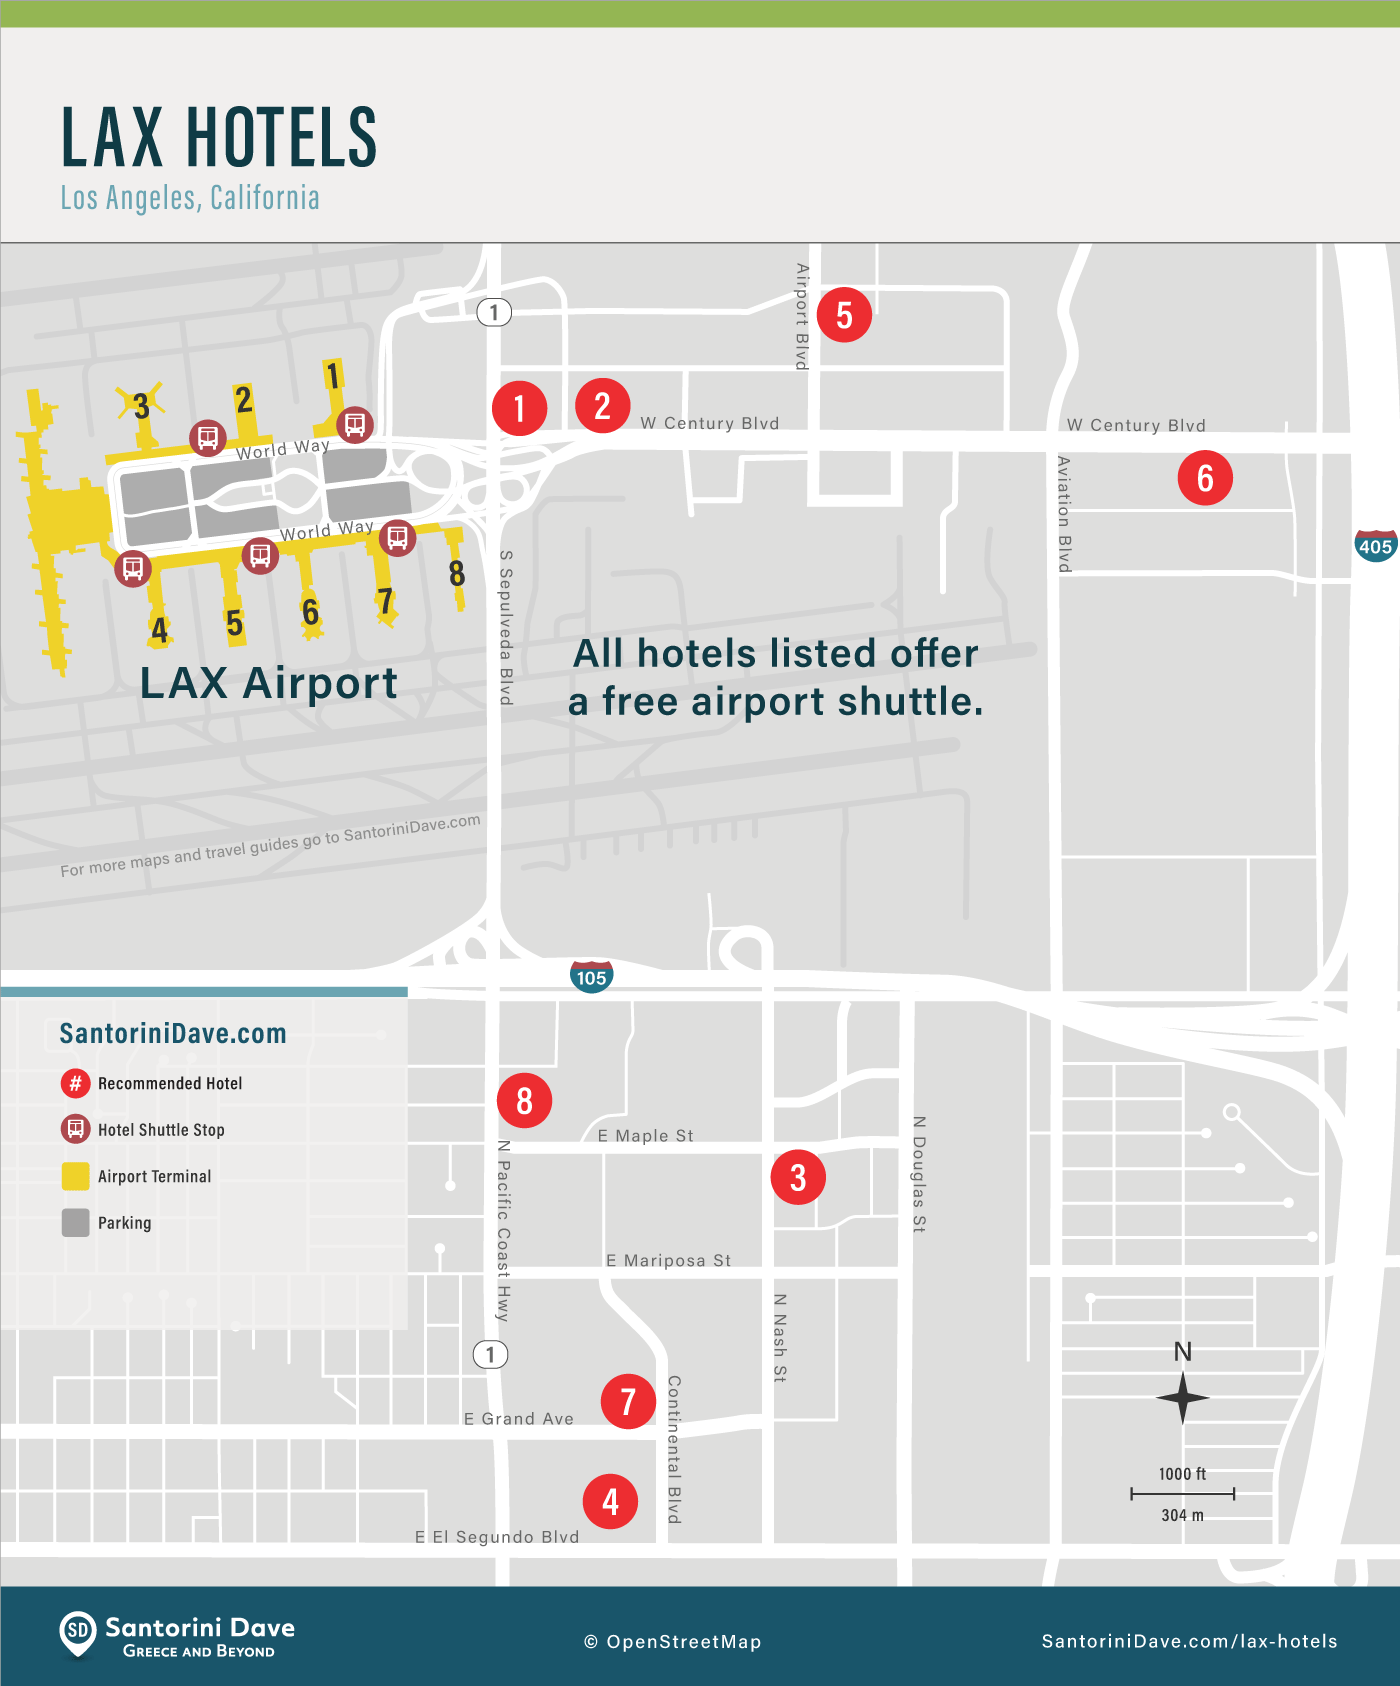 Map of hotels near LAX Airport in Los Angeles.